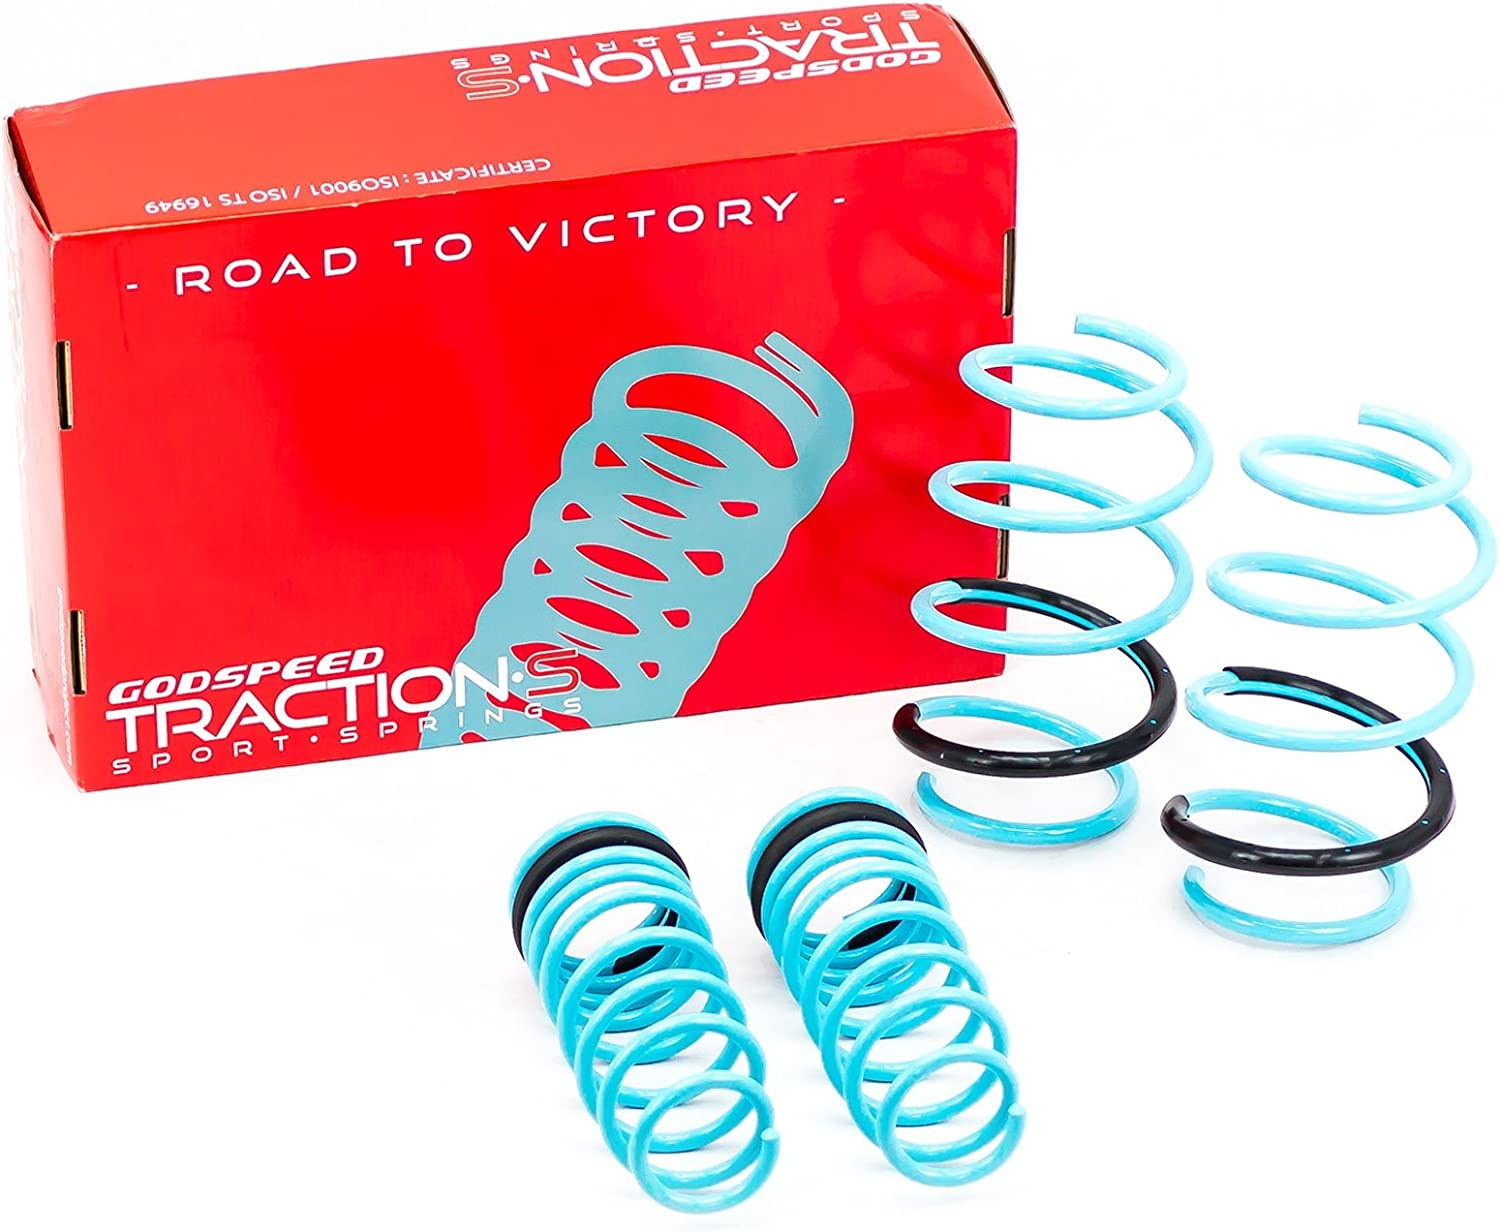 E160//E170 Compatible With//Replacement For Brightt GSP-GVF-021 Traction-S Performance Lowering Springs 2014+Up Base Set of 4 fits Corolla